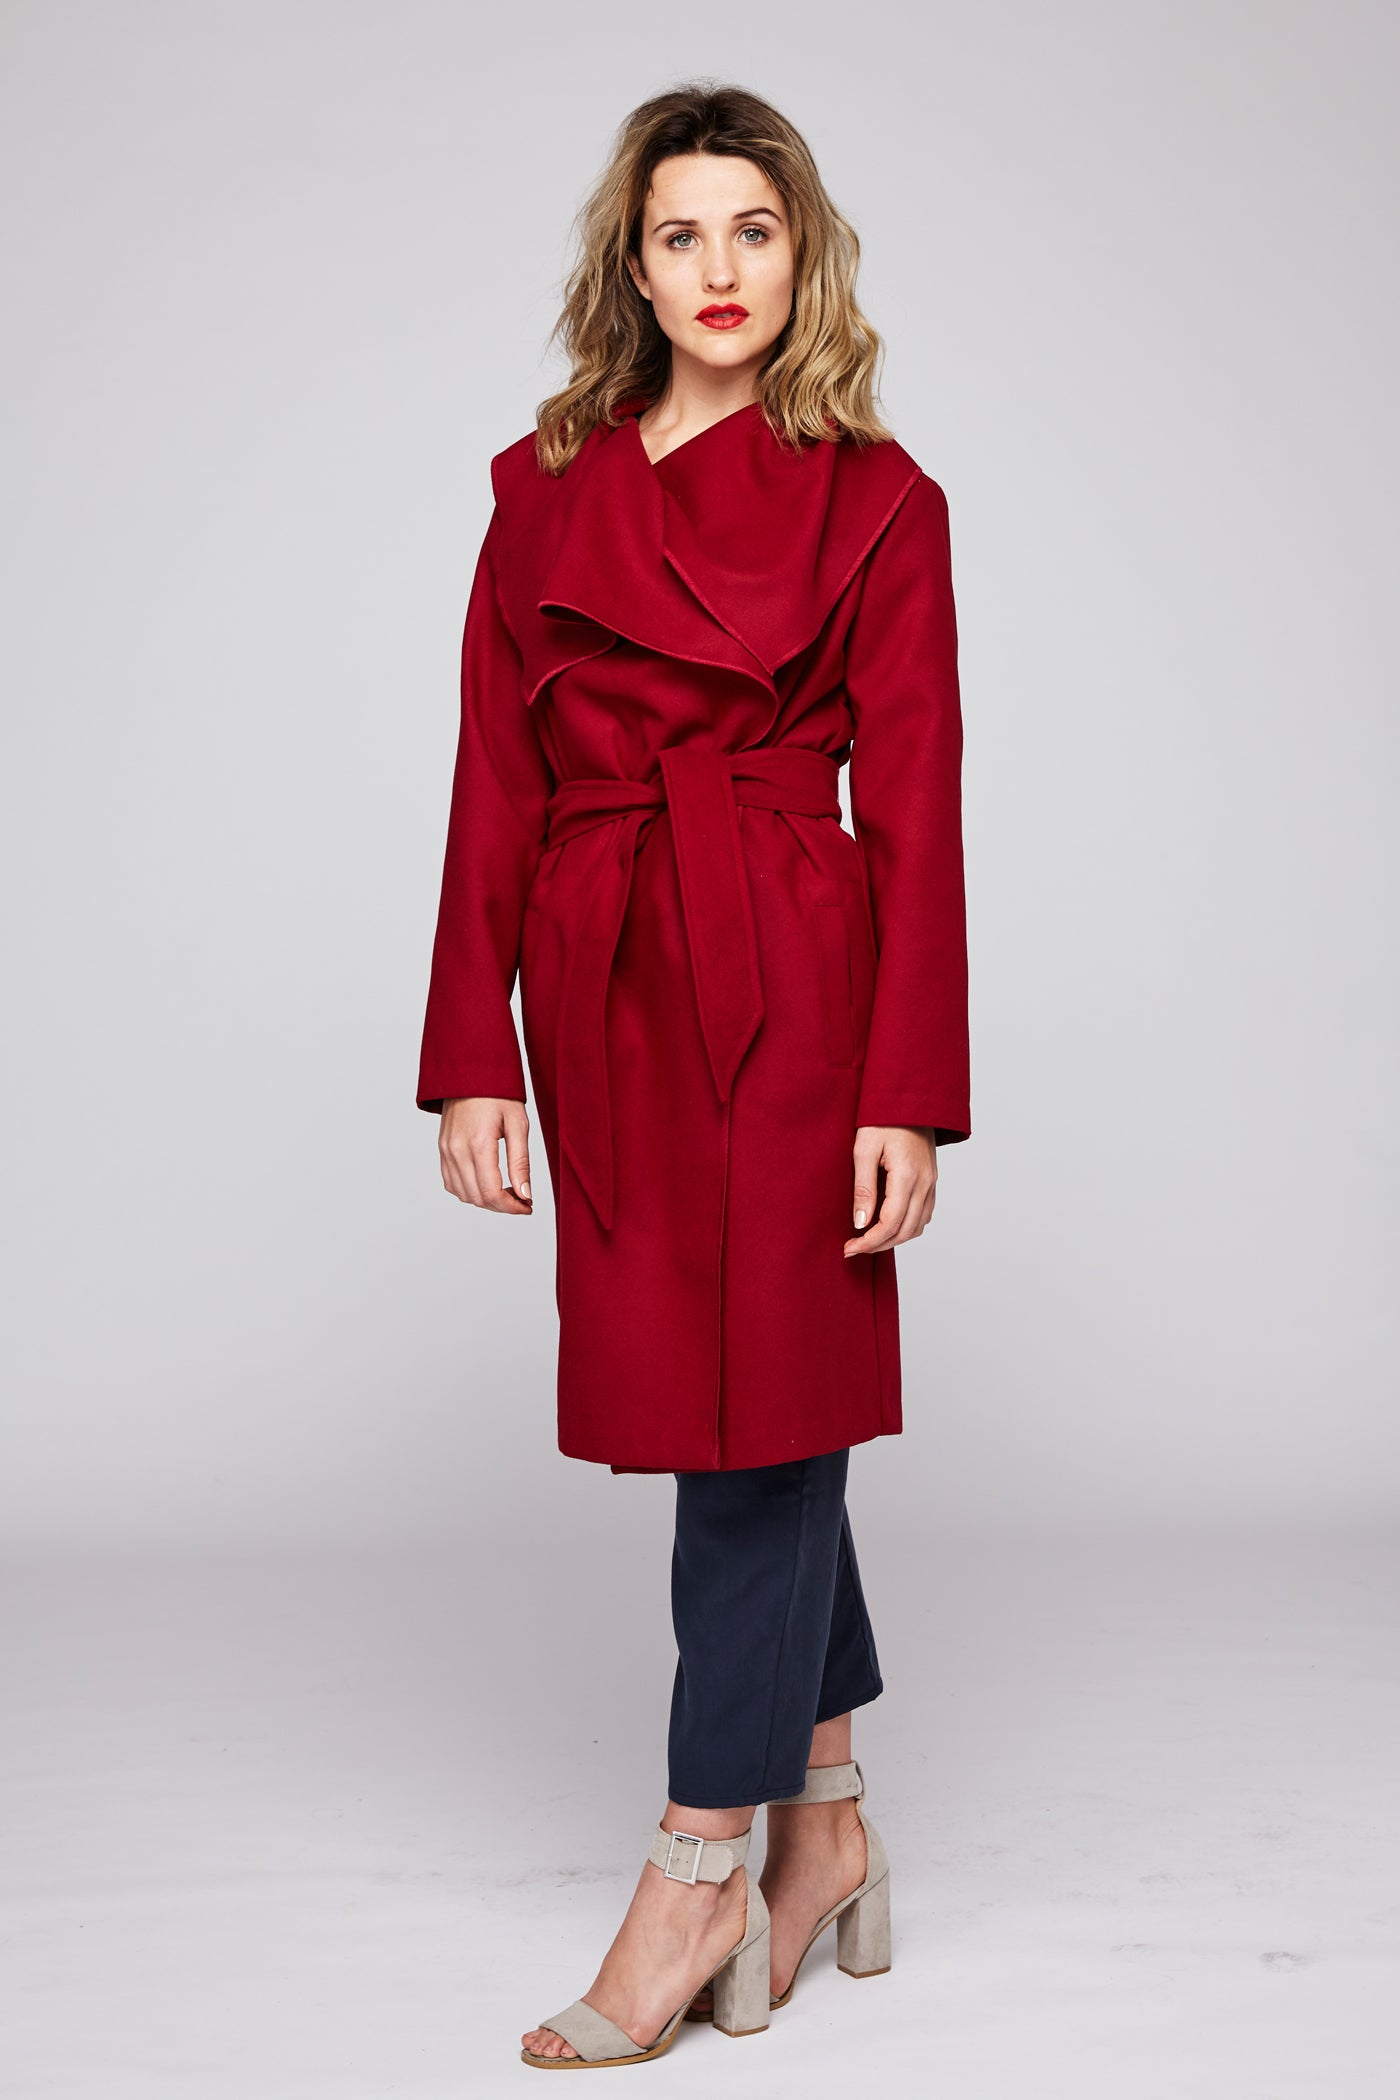 The Coat - Burgundy